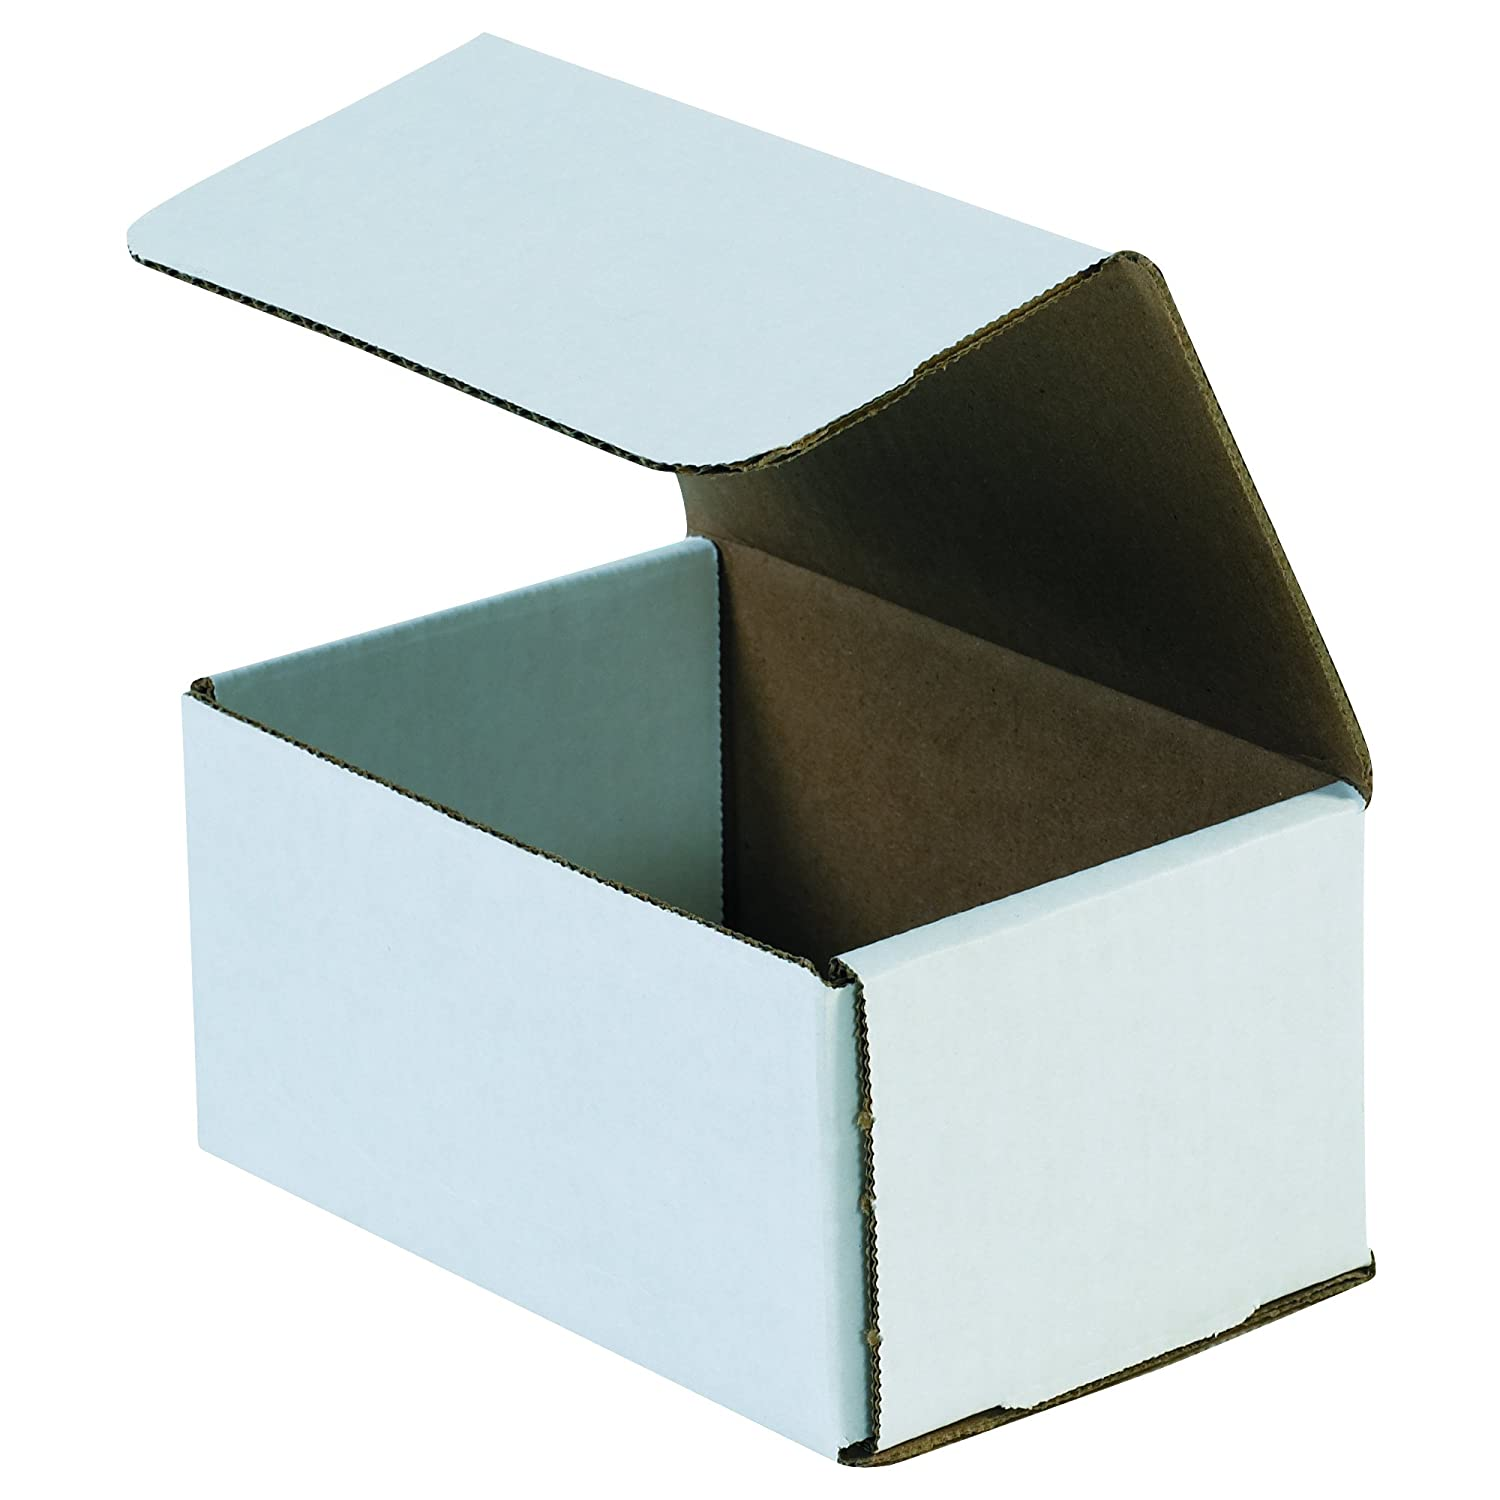 Boxes Fast BFM643 Corrugated Cardboard Mailers, 6 x 4 x 3 Inches, Tuck Top One-Piece, Die-Cut Shipping Cartons, Small White Mailing Boxes (Pack of 50)